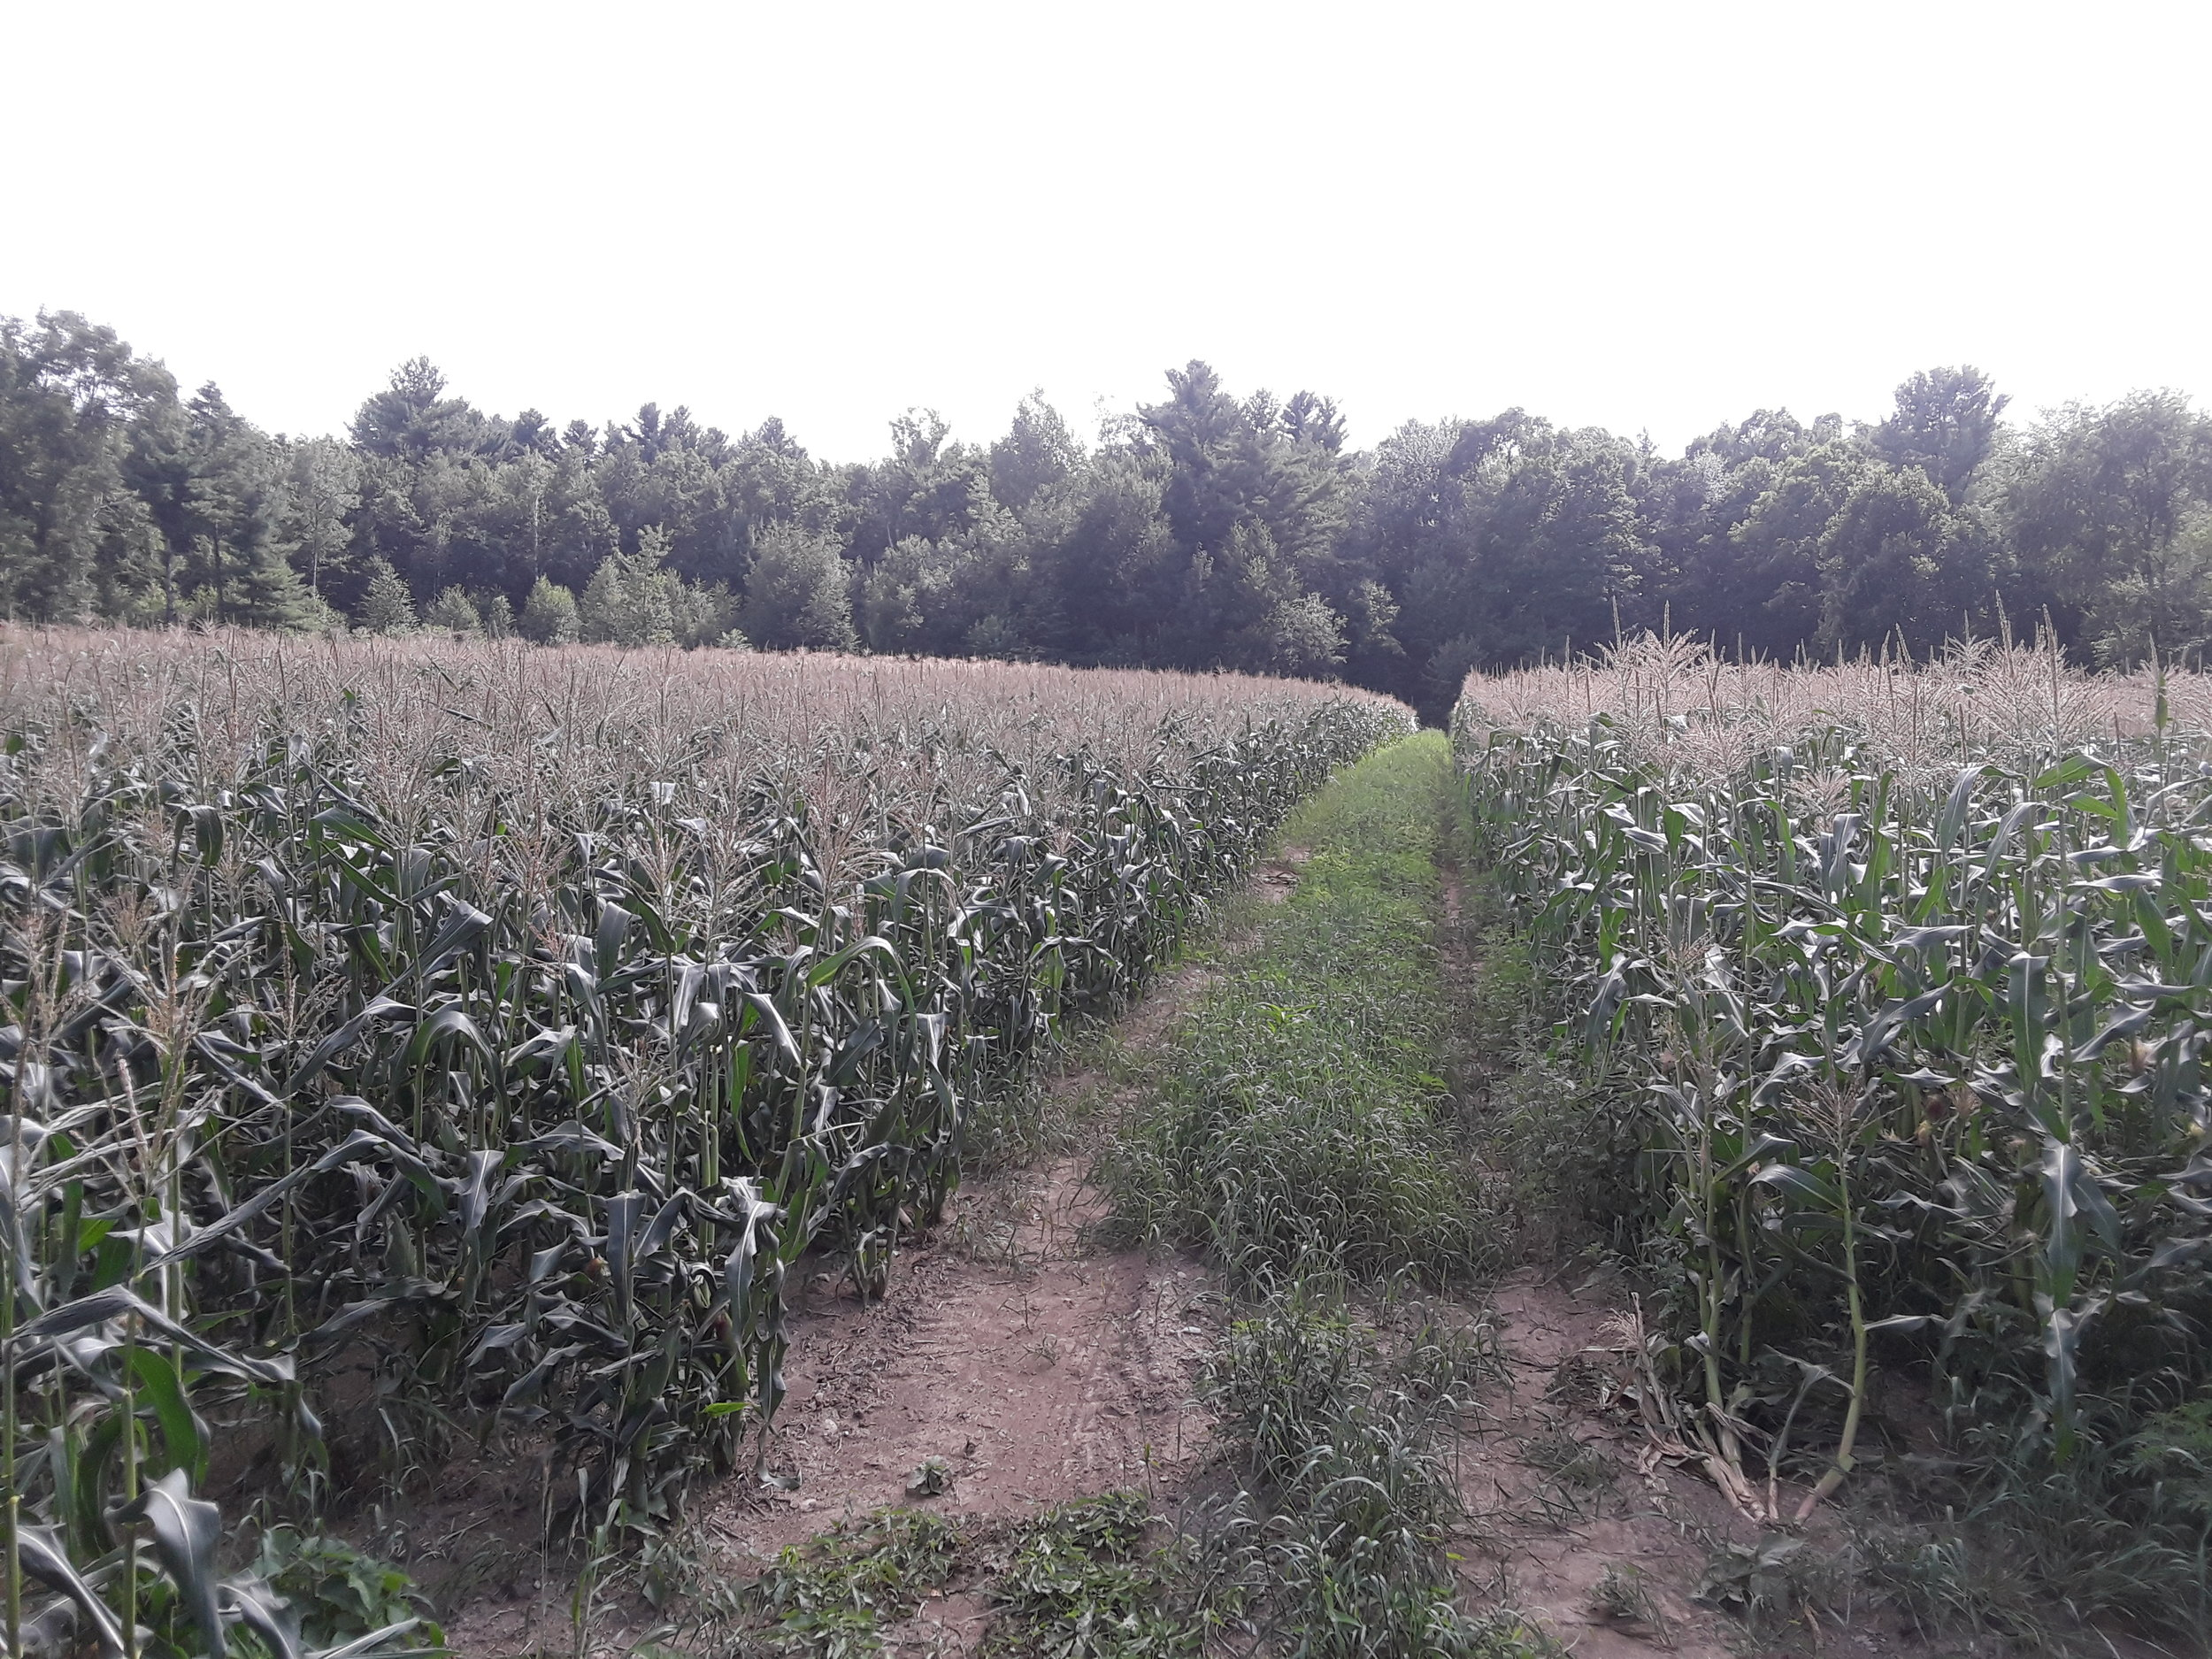 One of the many fields of sweet corn